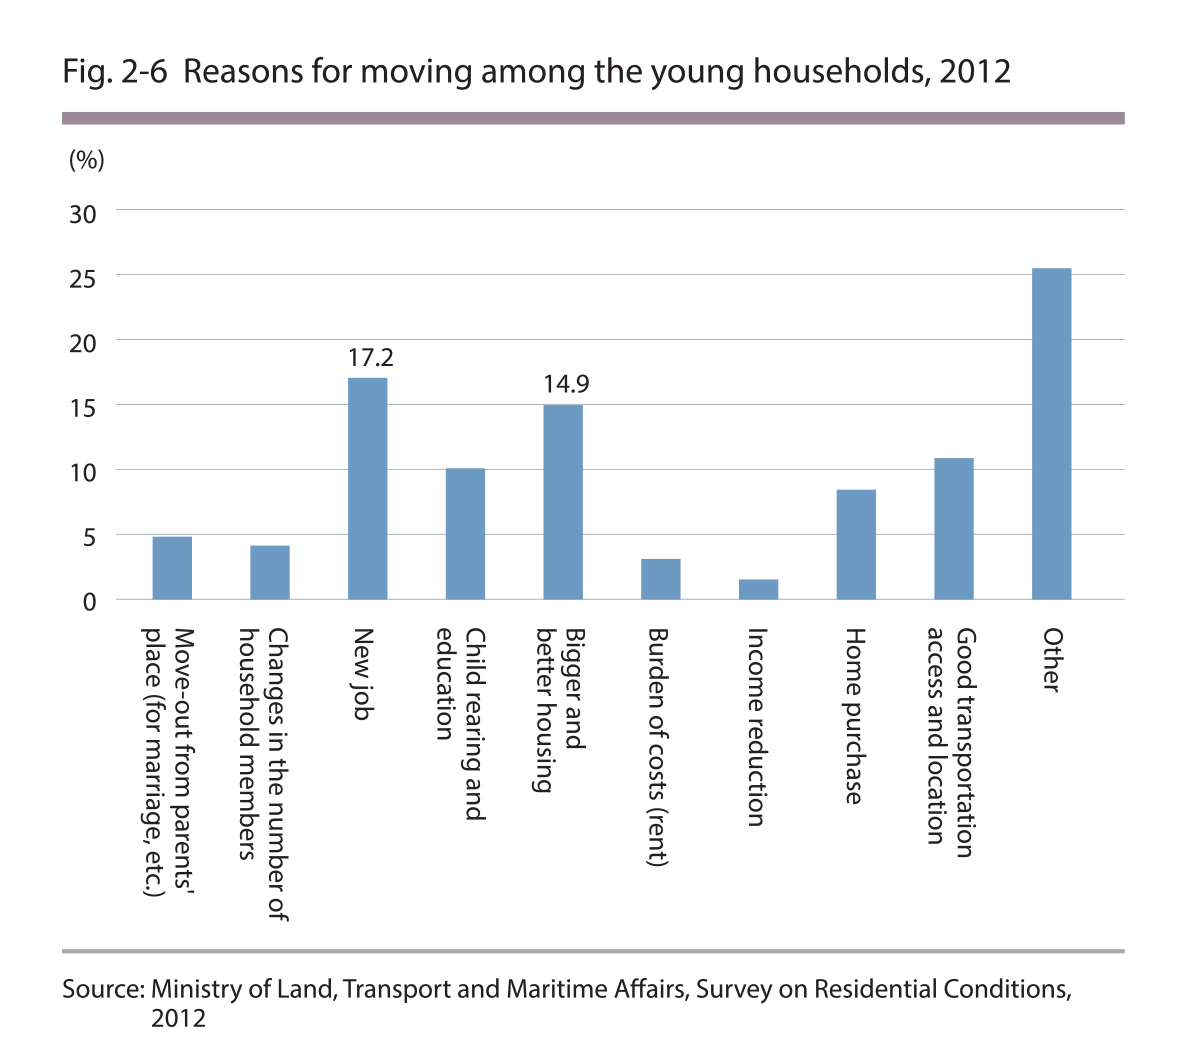 Reasons for moving among young households, 2012